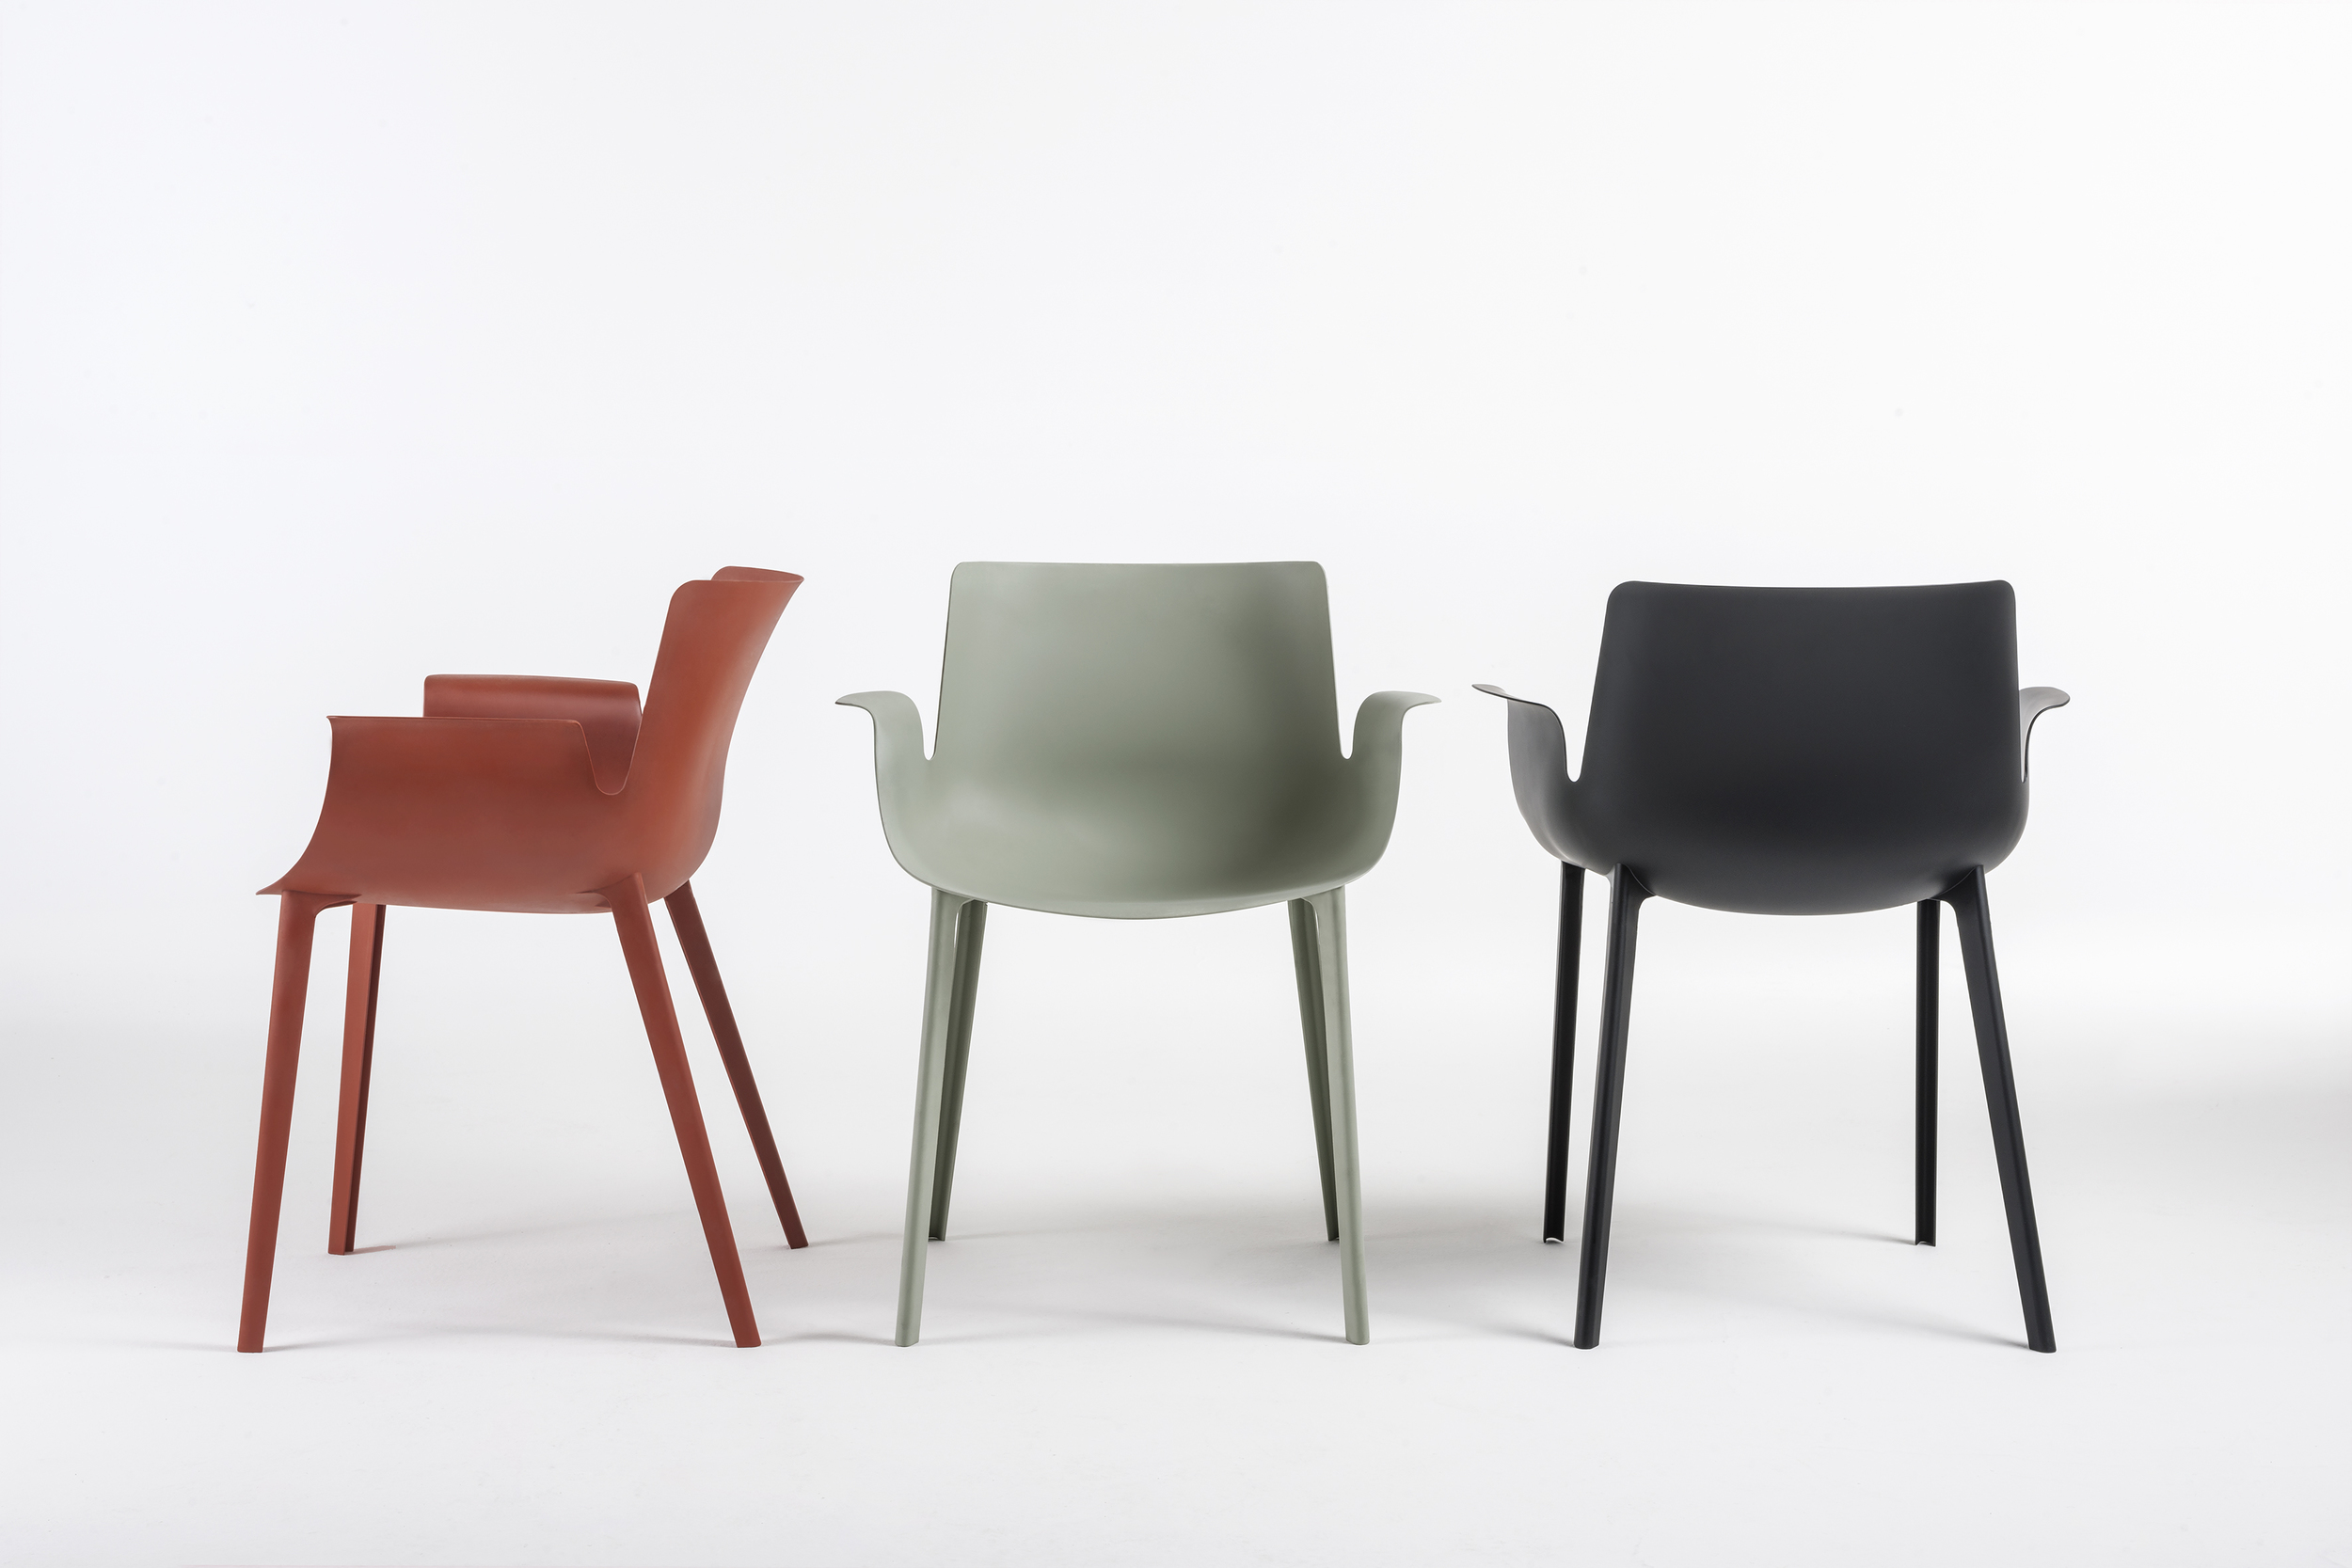 01_PIUMA_chairs trio.jpg